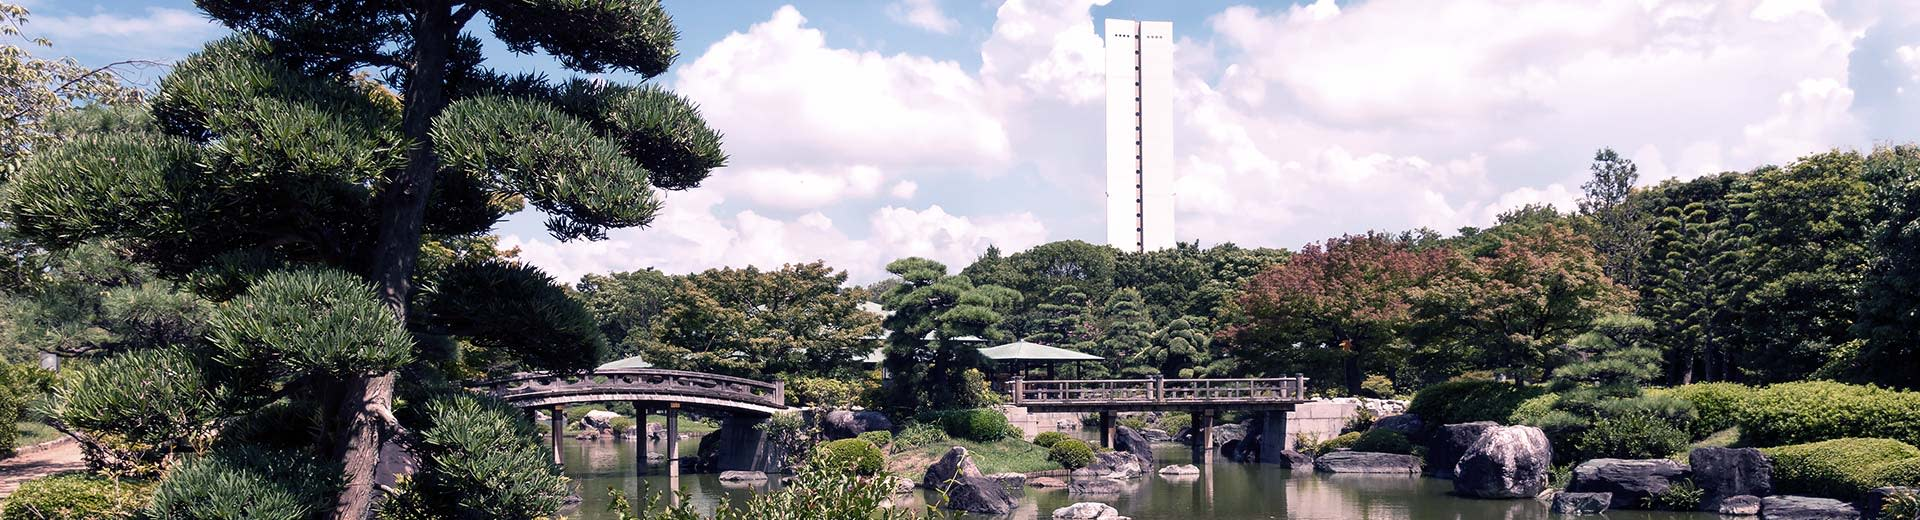 A traditional, green Japanese garden dominates the image, with a single white building looming in the background